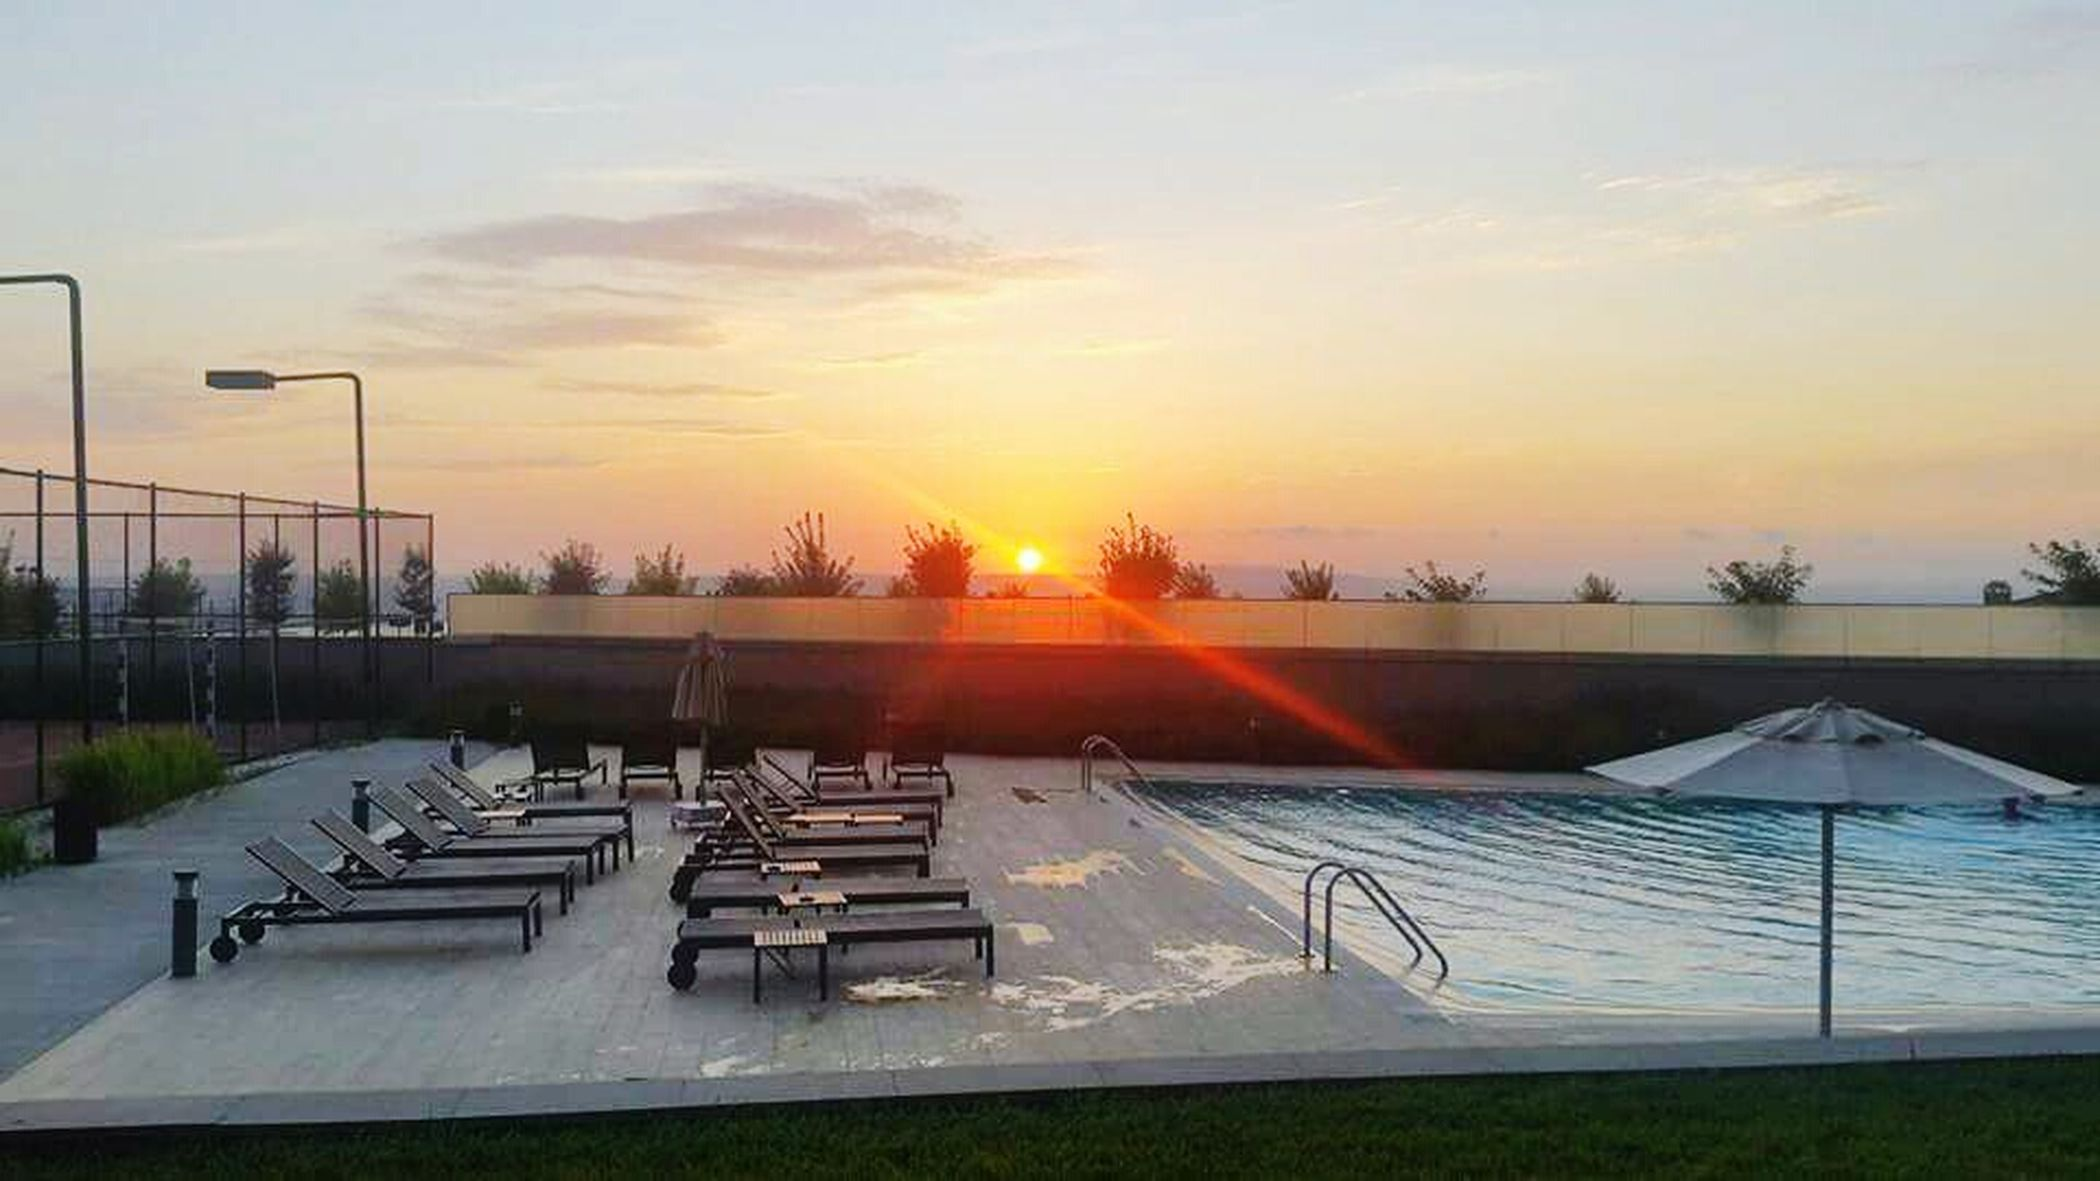 Pool Funtimes GreatTimesWithGreatPeople Relaxingview Sunset MissingThatTime Sunset_collection Uwcshortcourse2015 PhonePhotography Istanbul Turkey